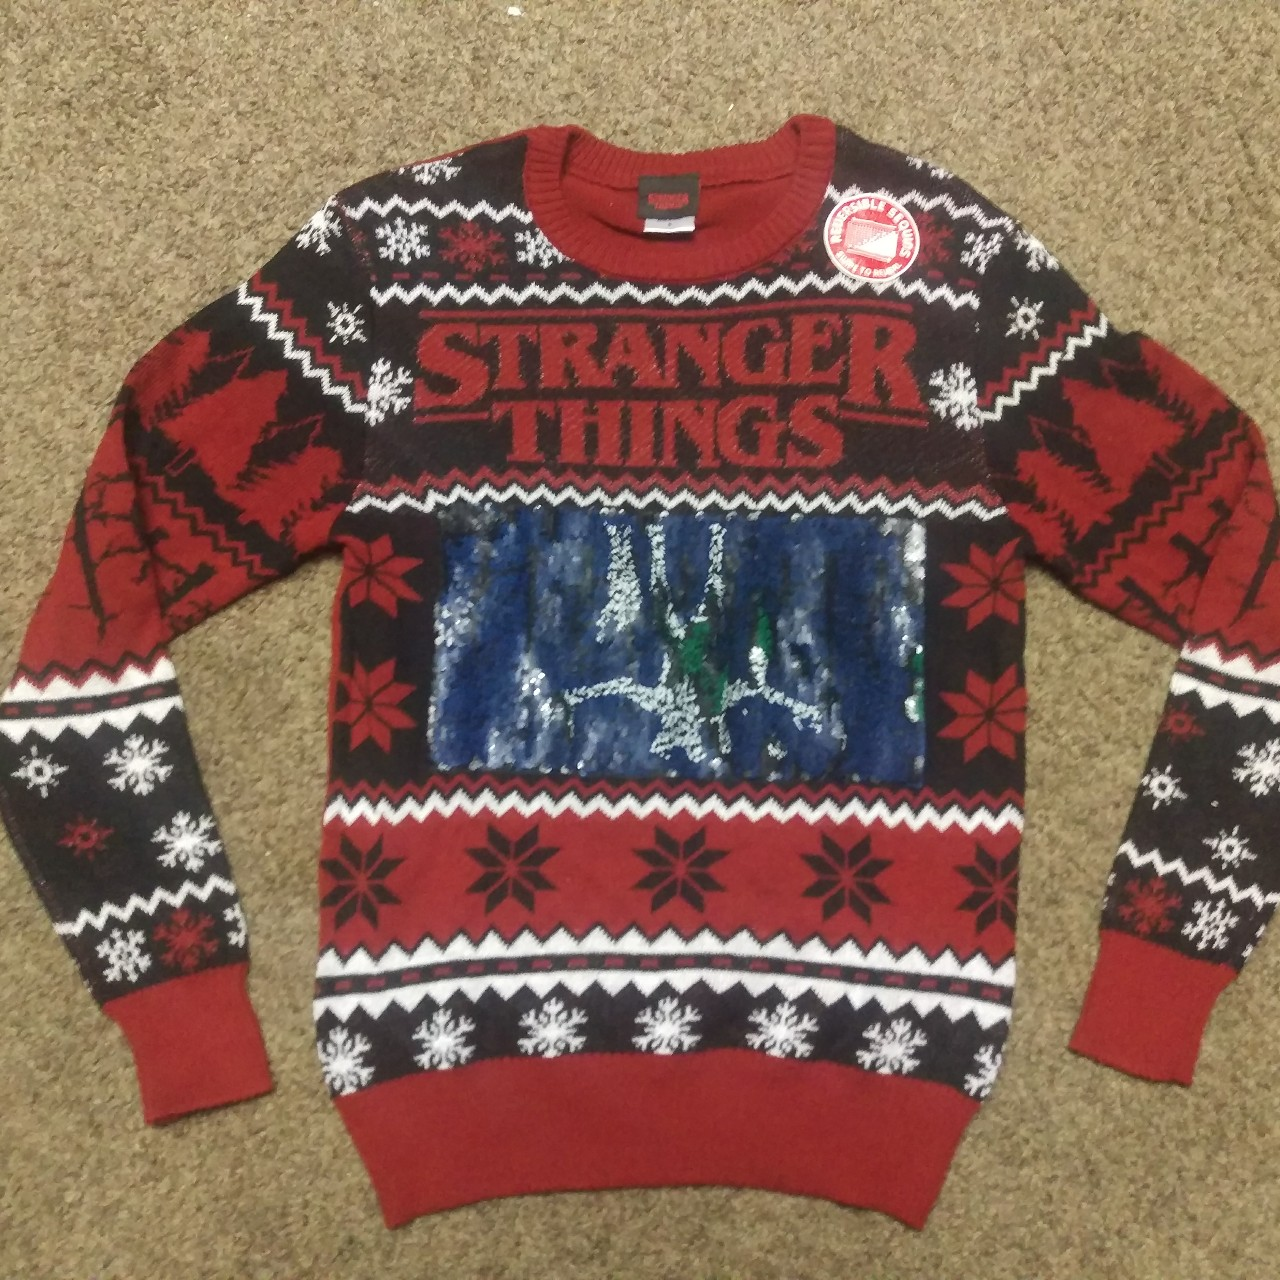 Stranger Things Christmas Sweater.Stranger Things Ugly Xmas Sweater Brand New Size Depop